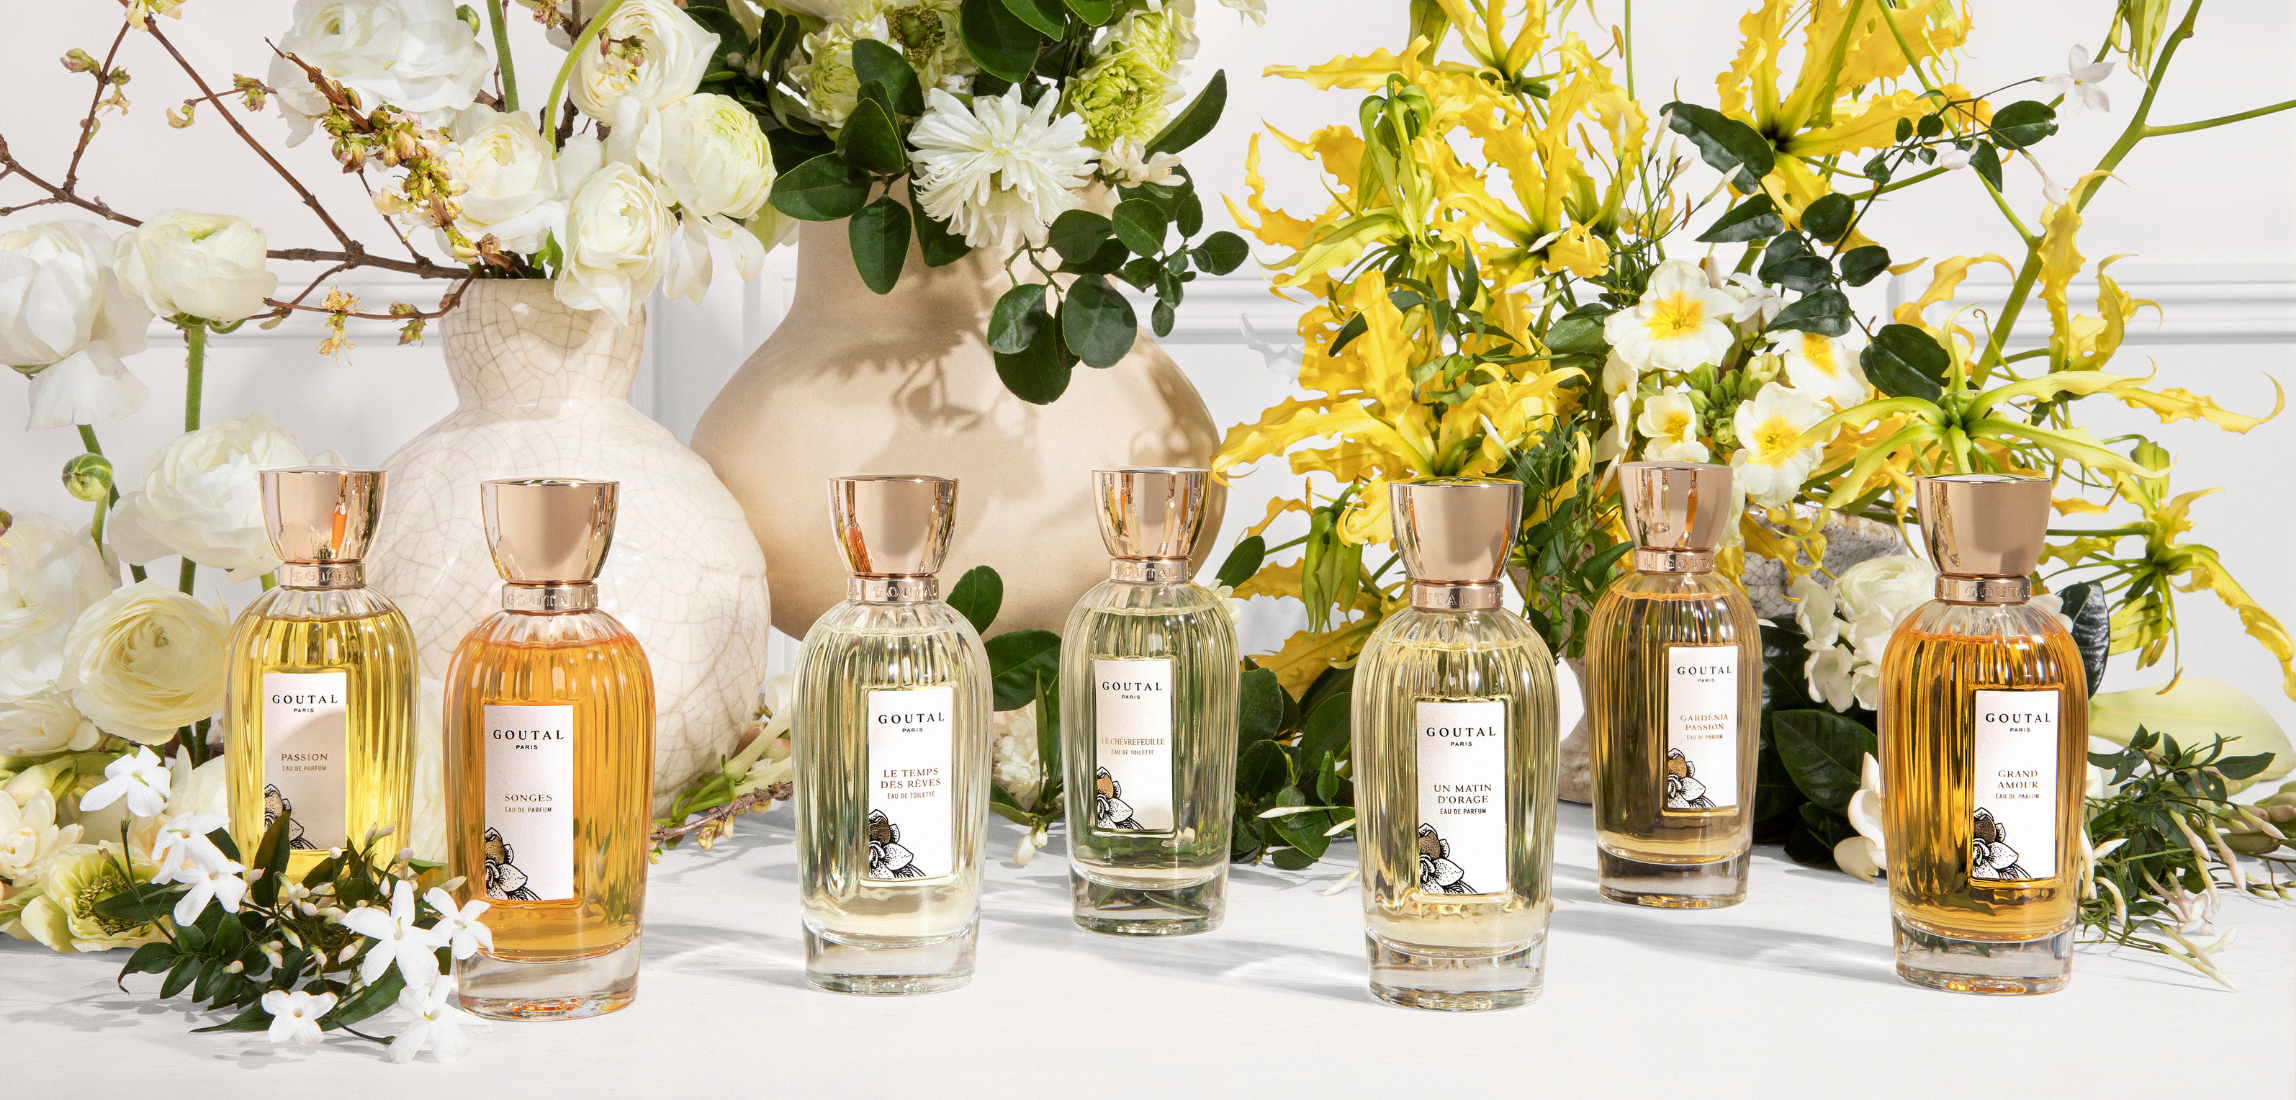 From mother to daughter, Annick & Camille Goutal share a love for white flowers, one of the House's finest know-how.